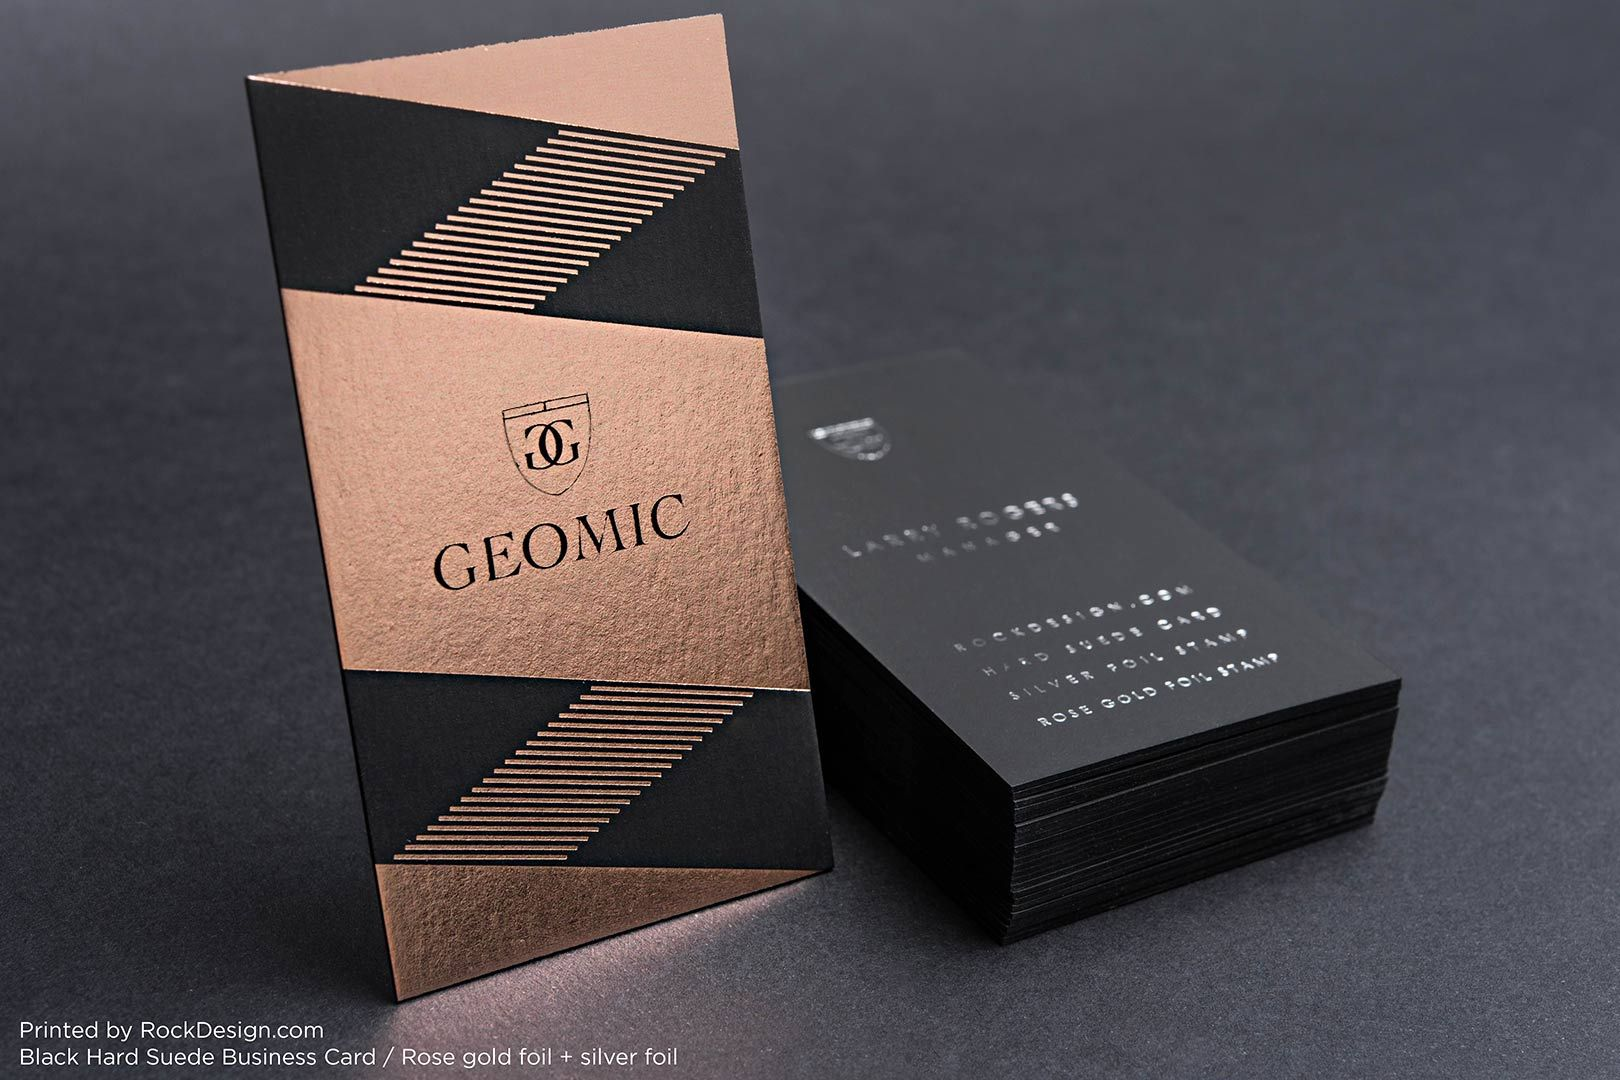 2 sided spot uv business cards rockdesign luxury business card 2 sided spot uv business cards rockdesign luxury business card printing business cards pinterest luxury business cards business cards and card magicingreecefo Gallery